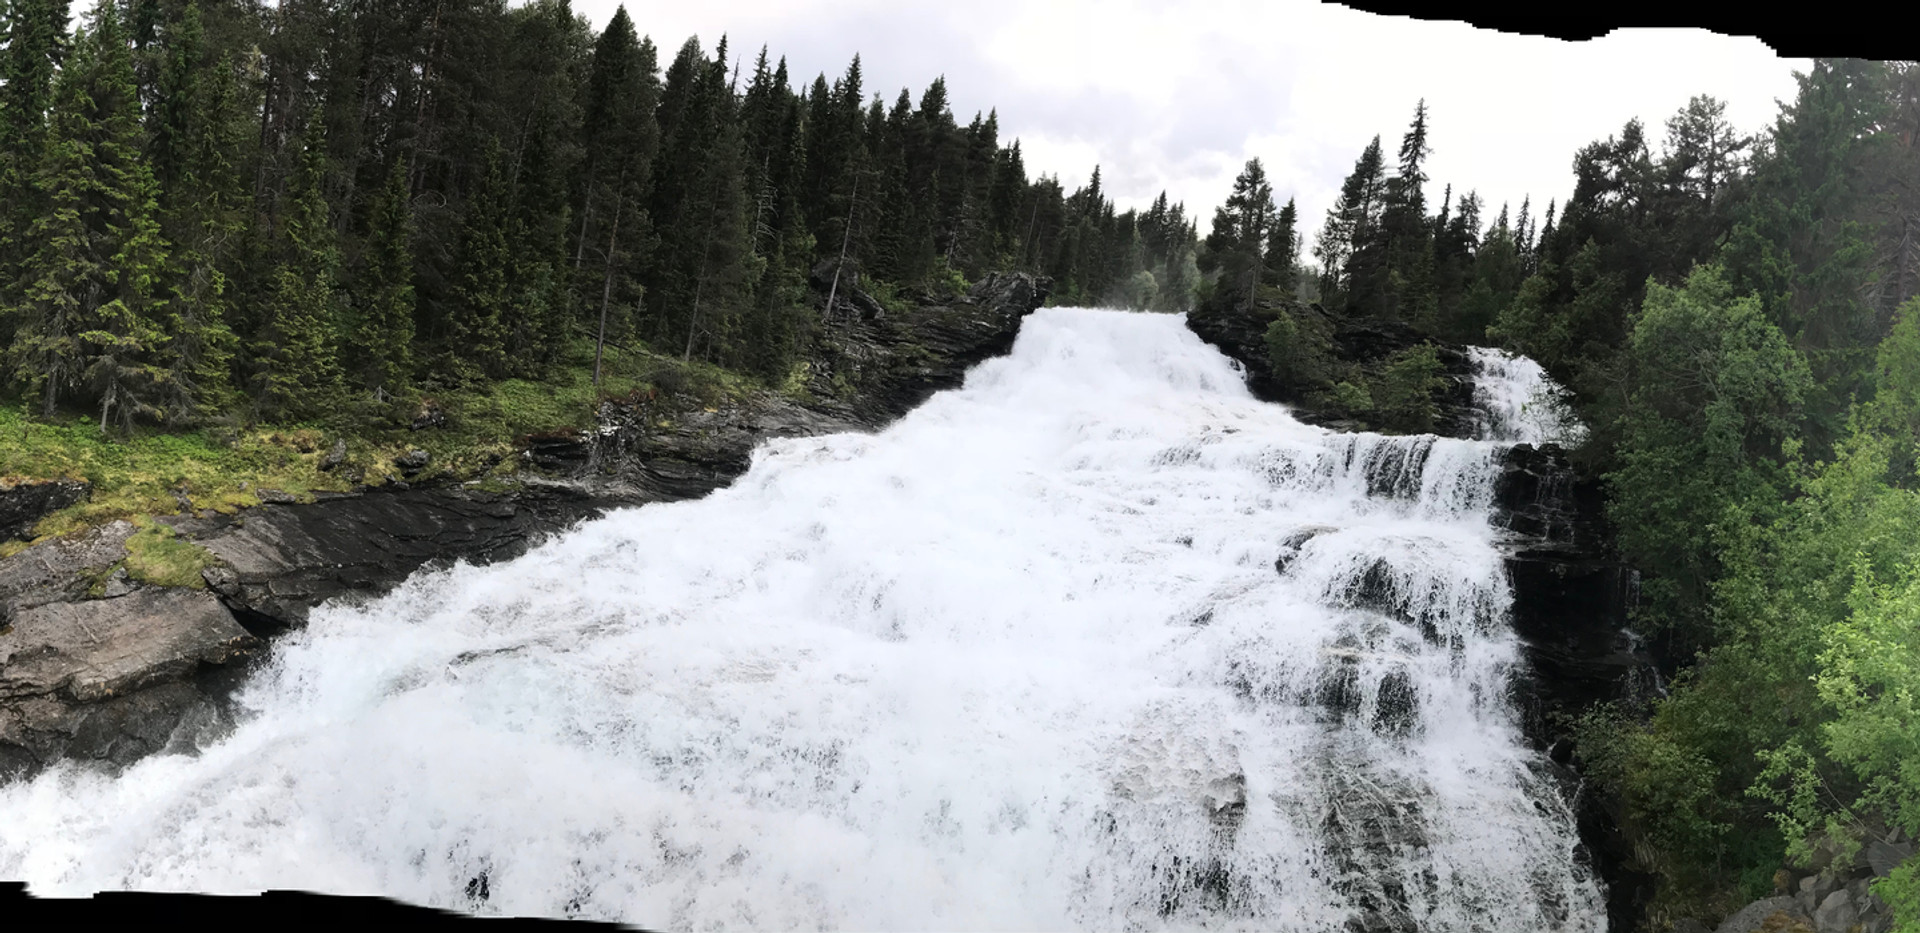 Bru over vermafossen